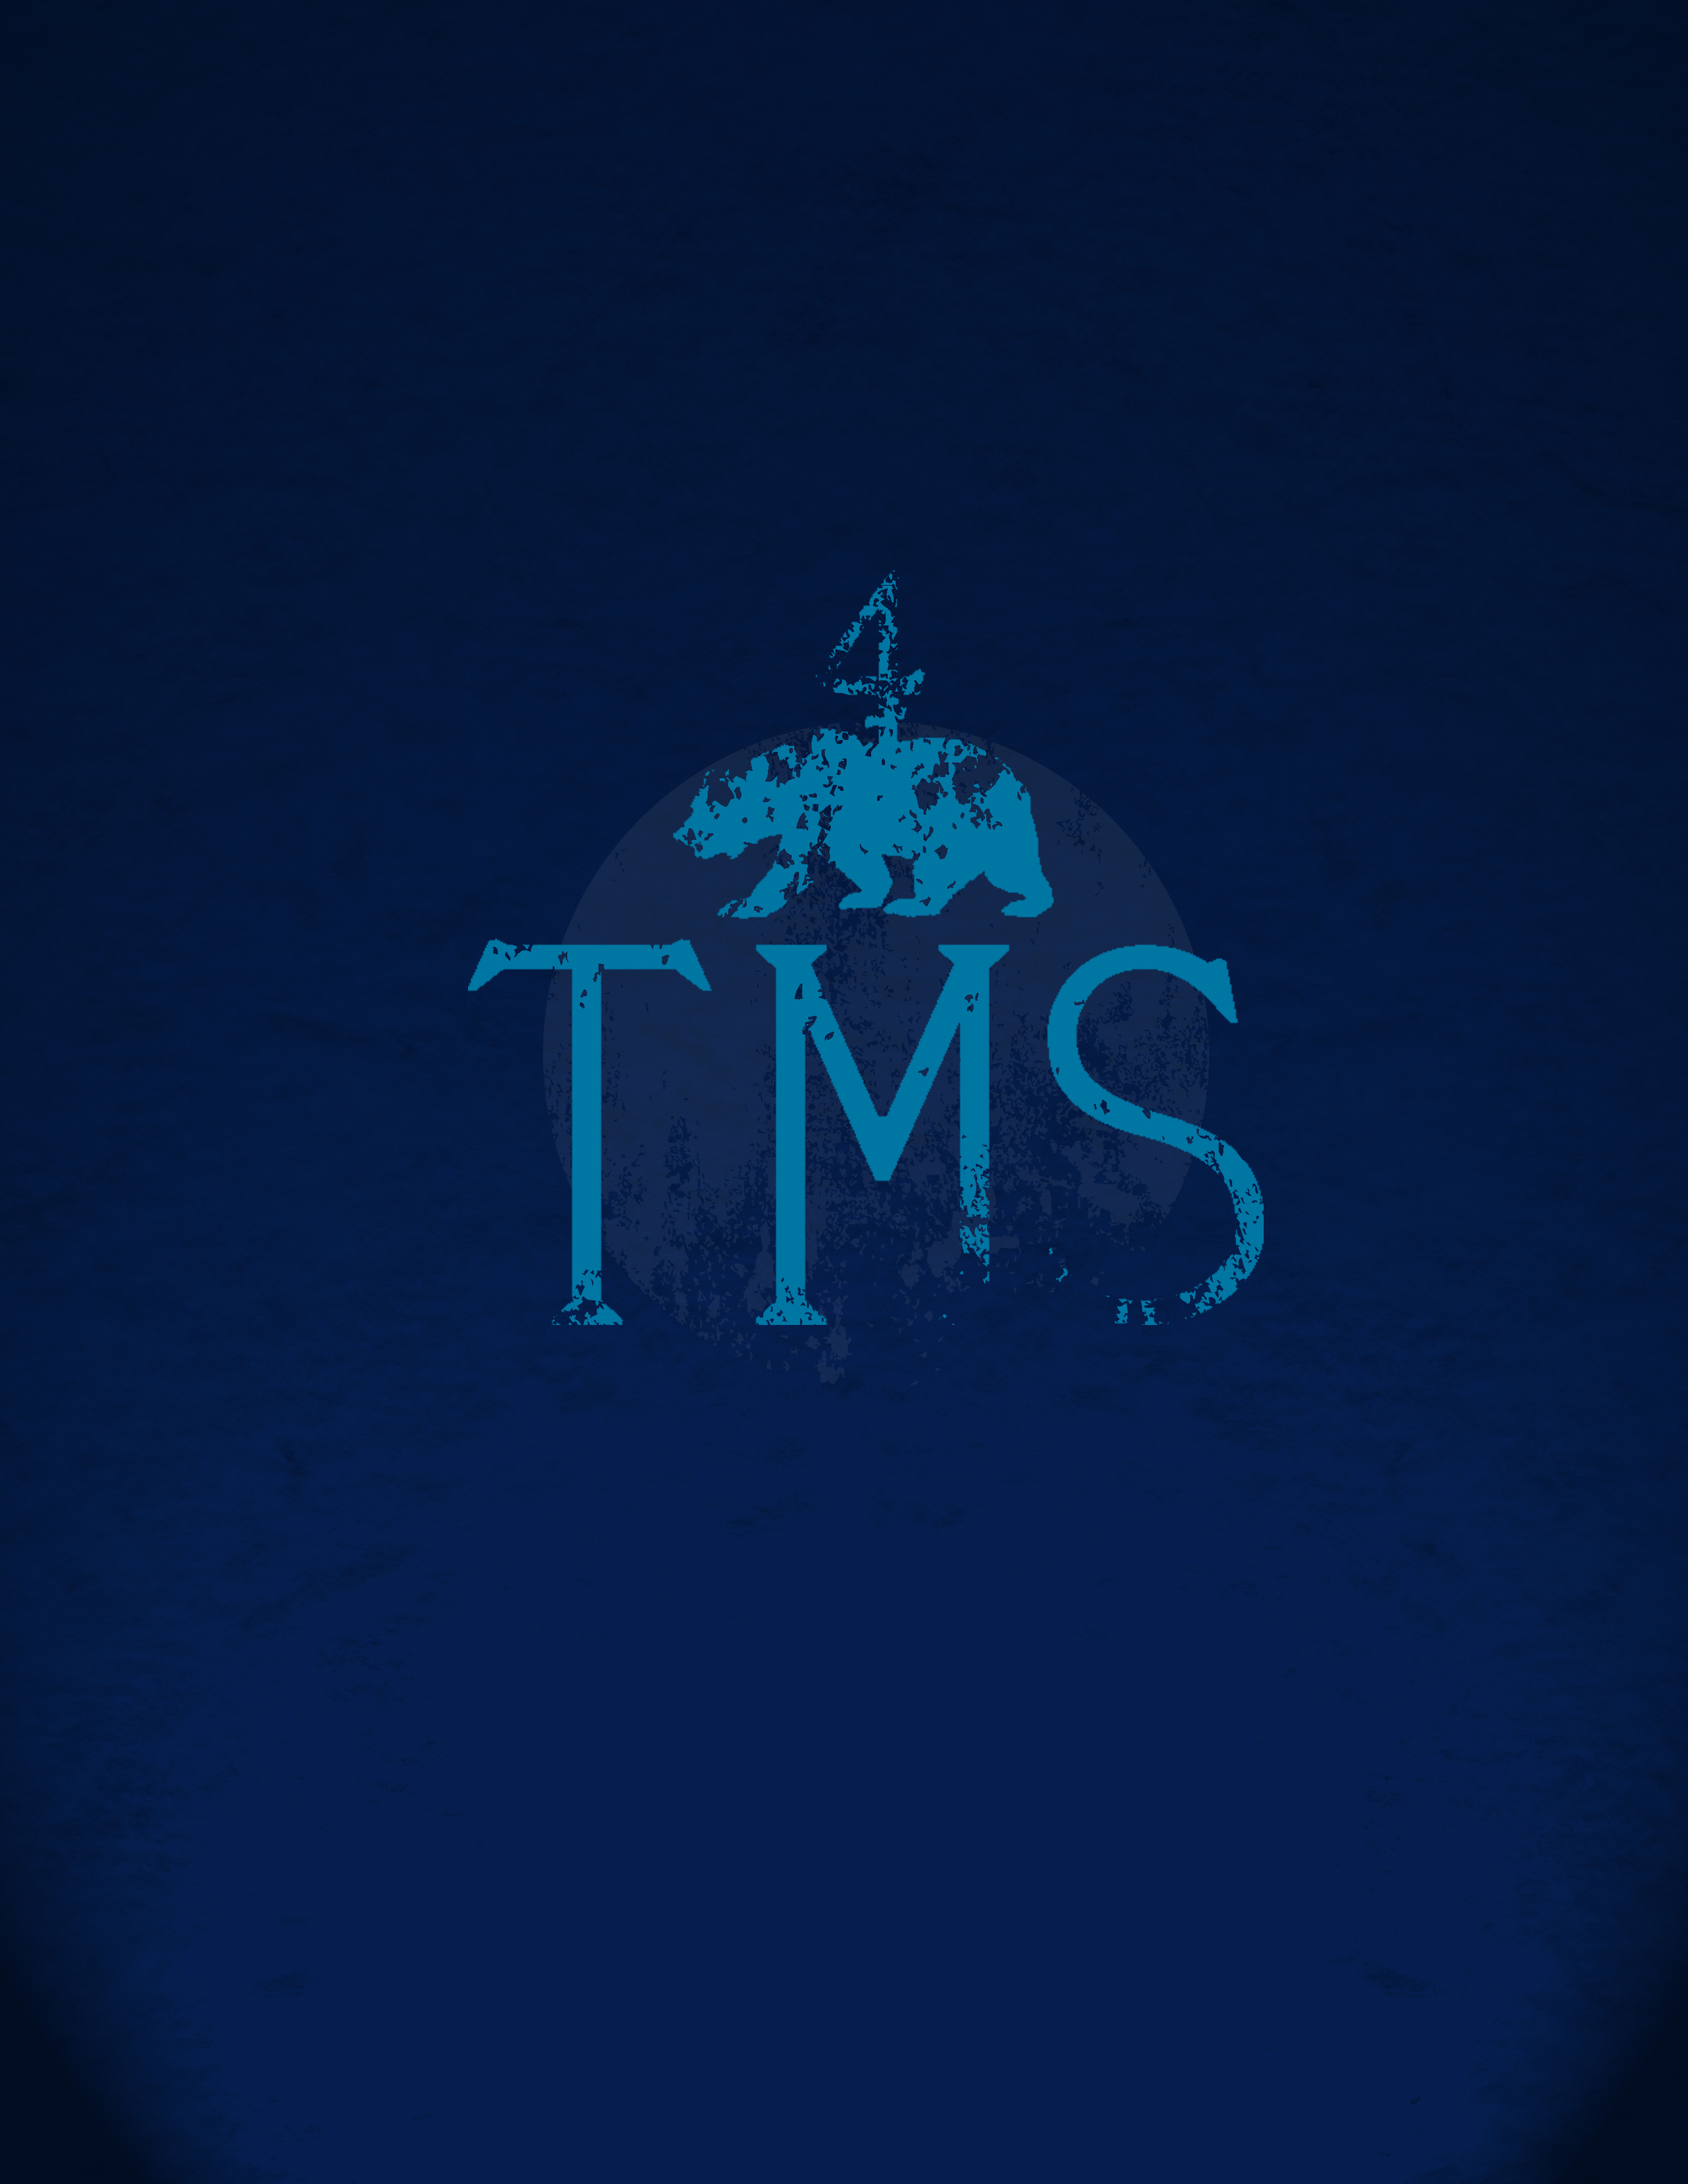 tms 5 worn_blue2.jpg